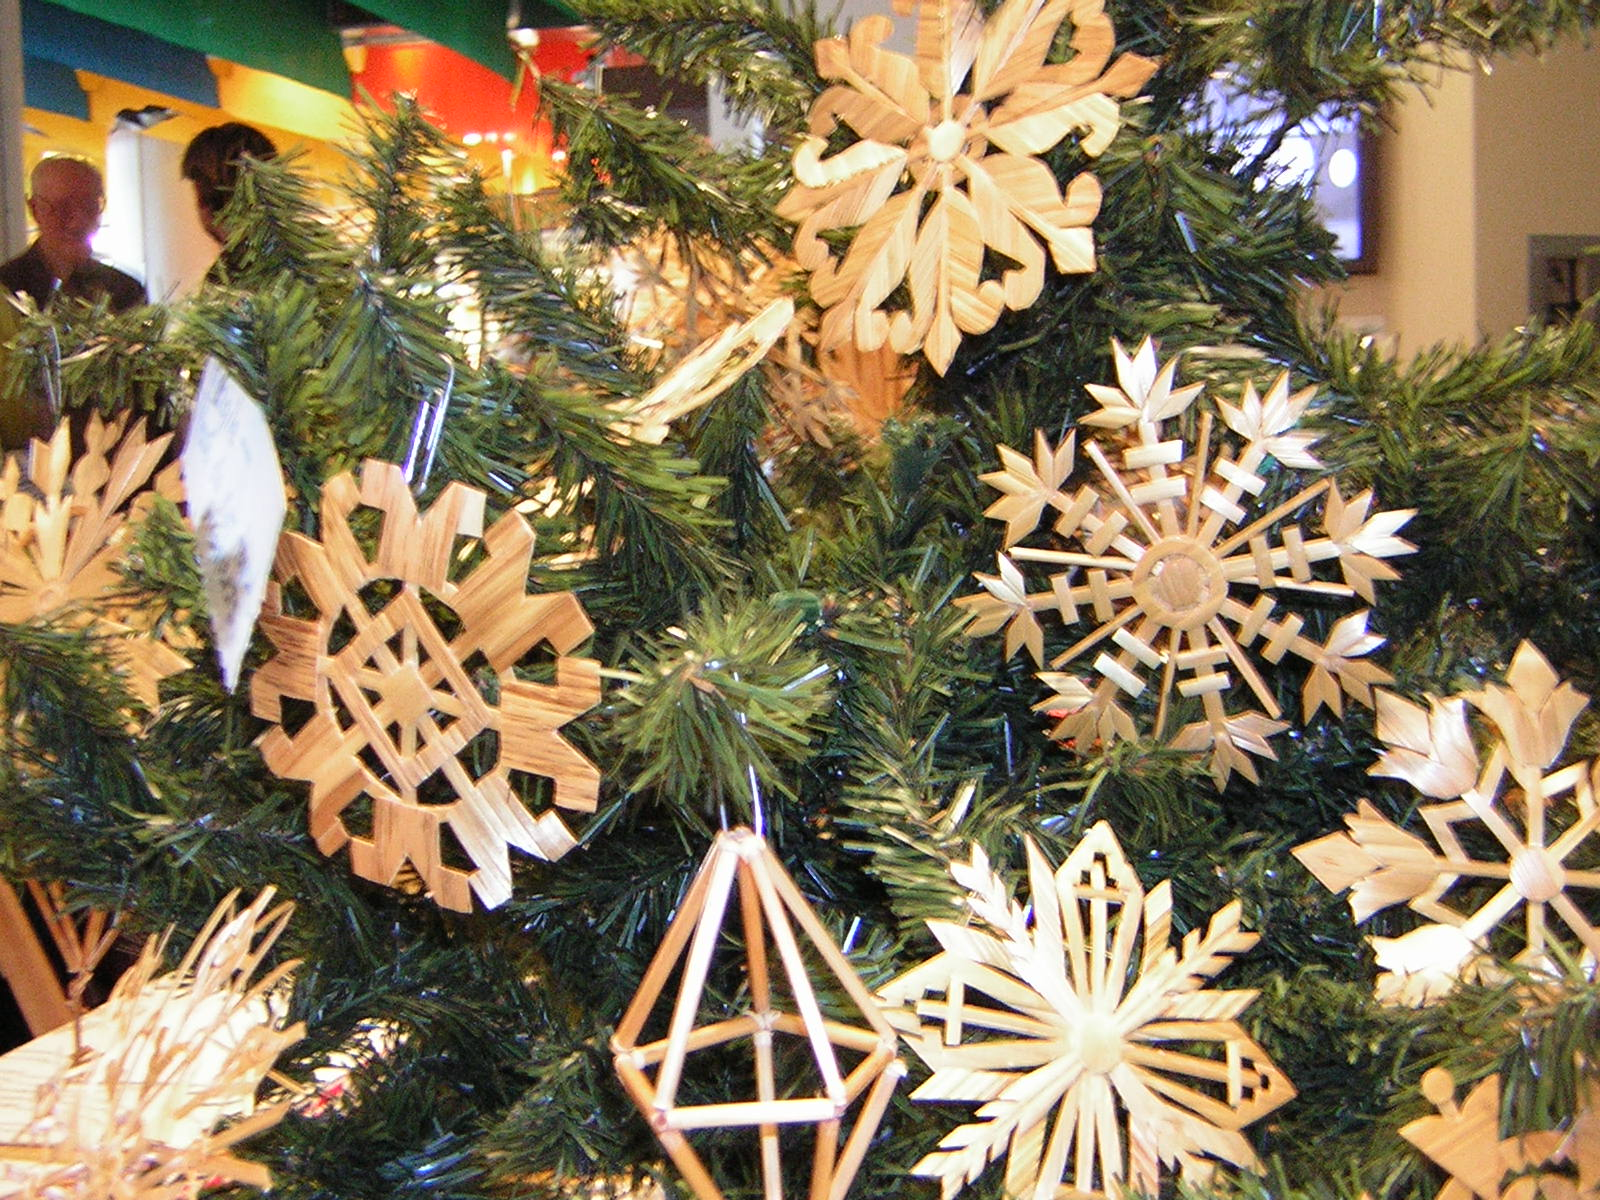 Lithuanian straw ornaments